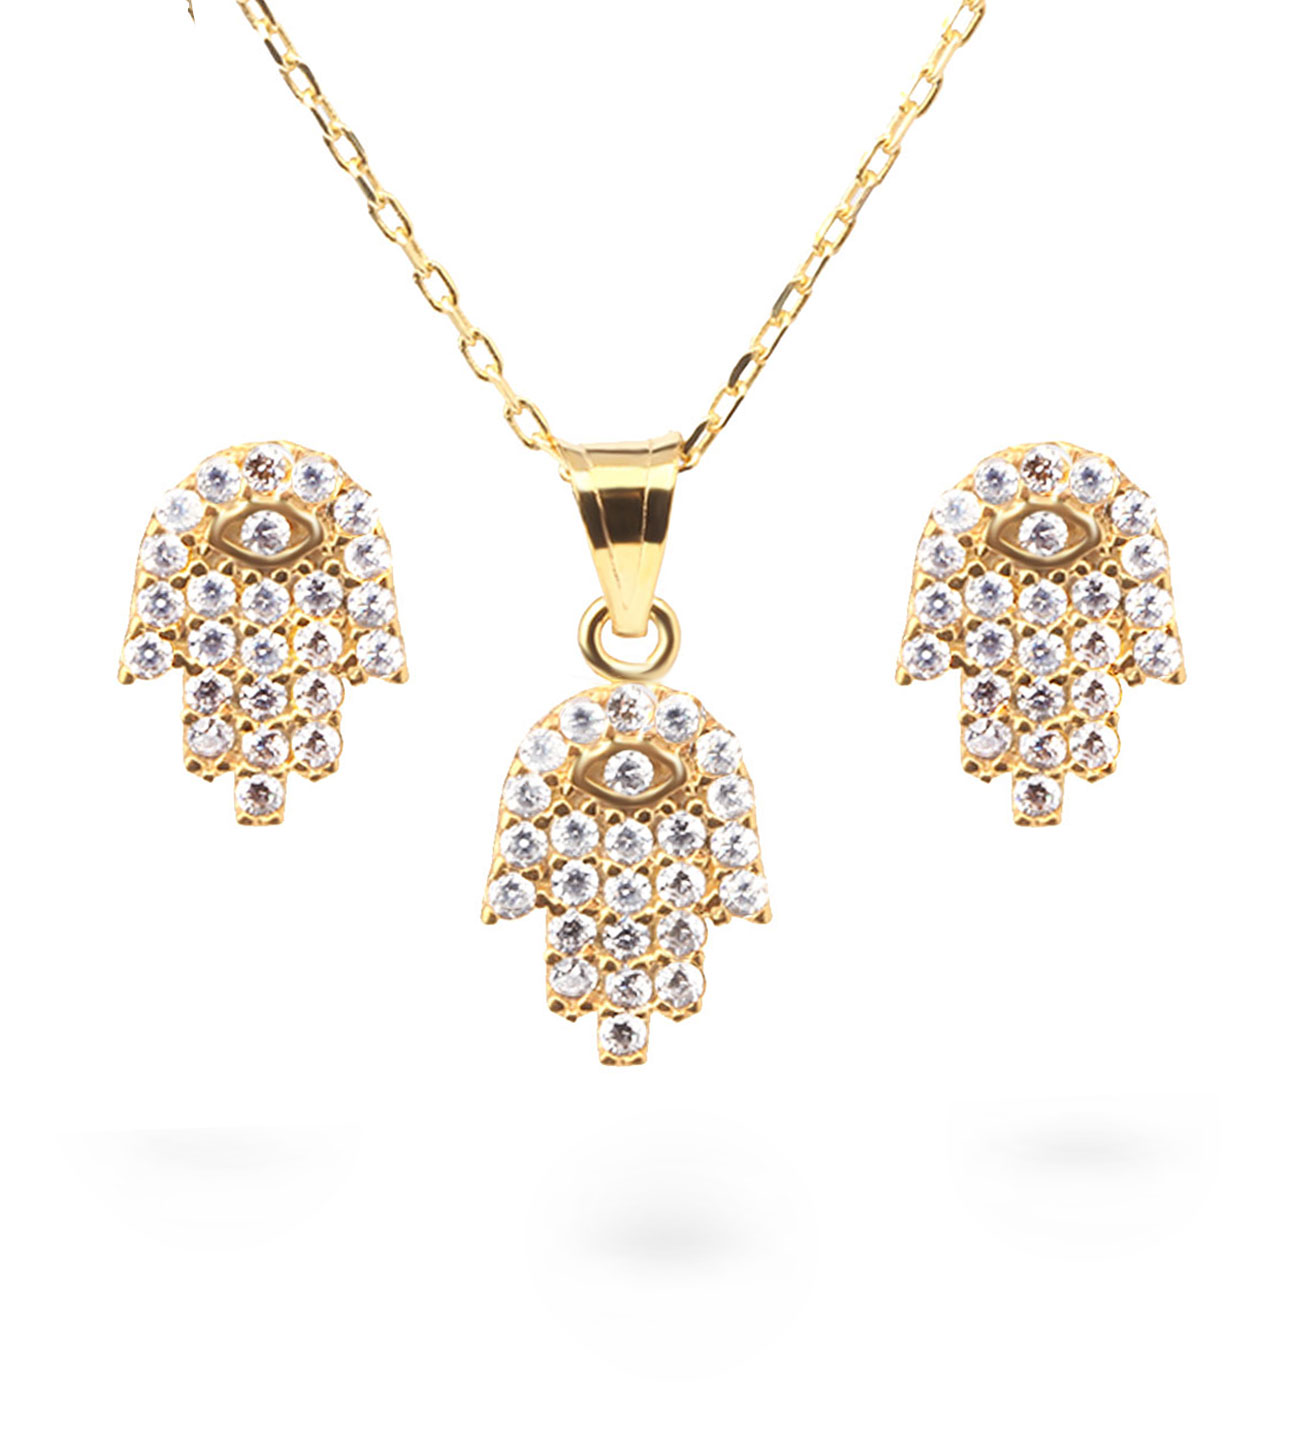 Women's Gemmed Hand Pendant Gold Necklace & Earrings Set